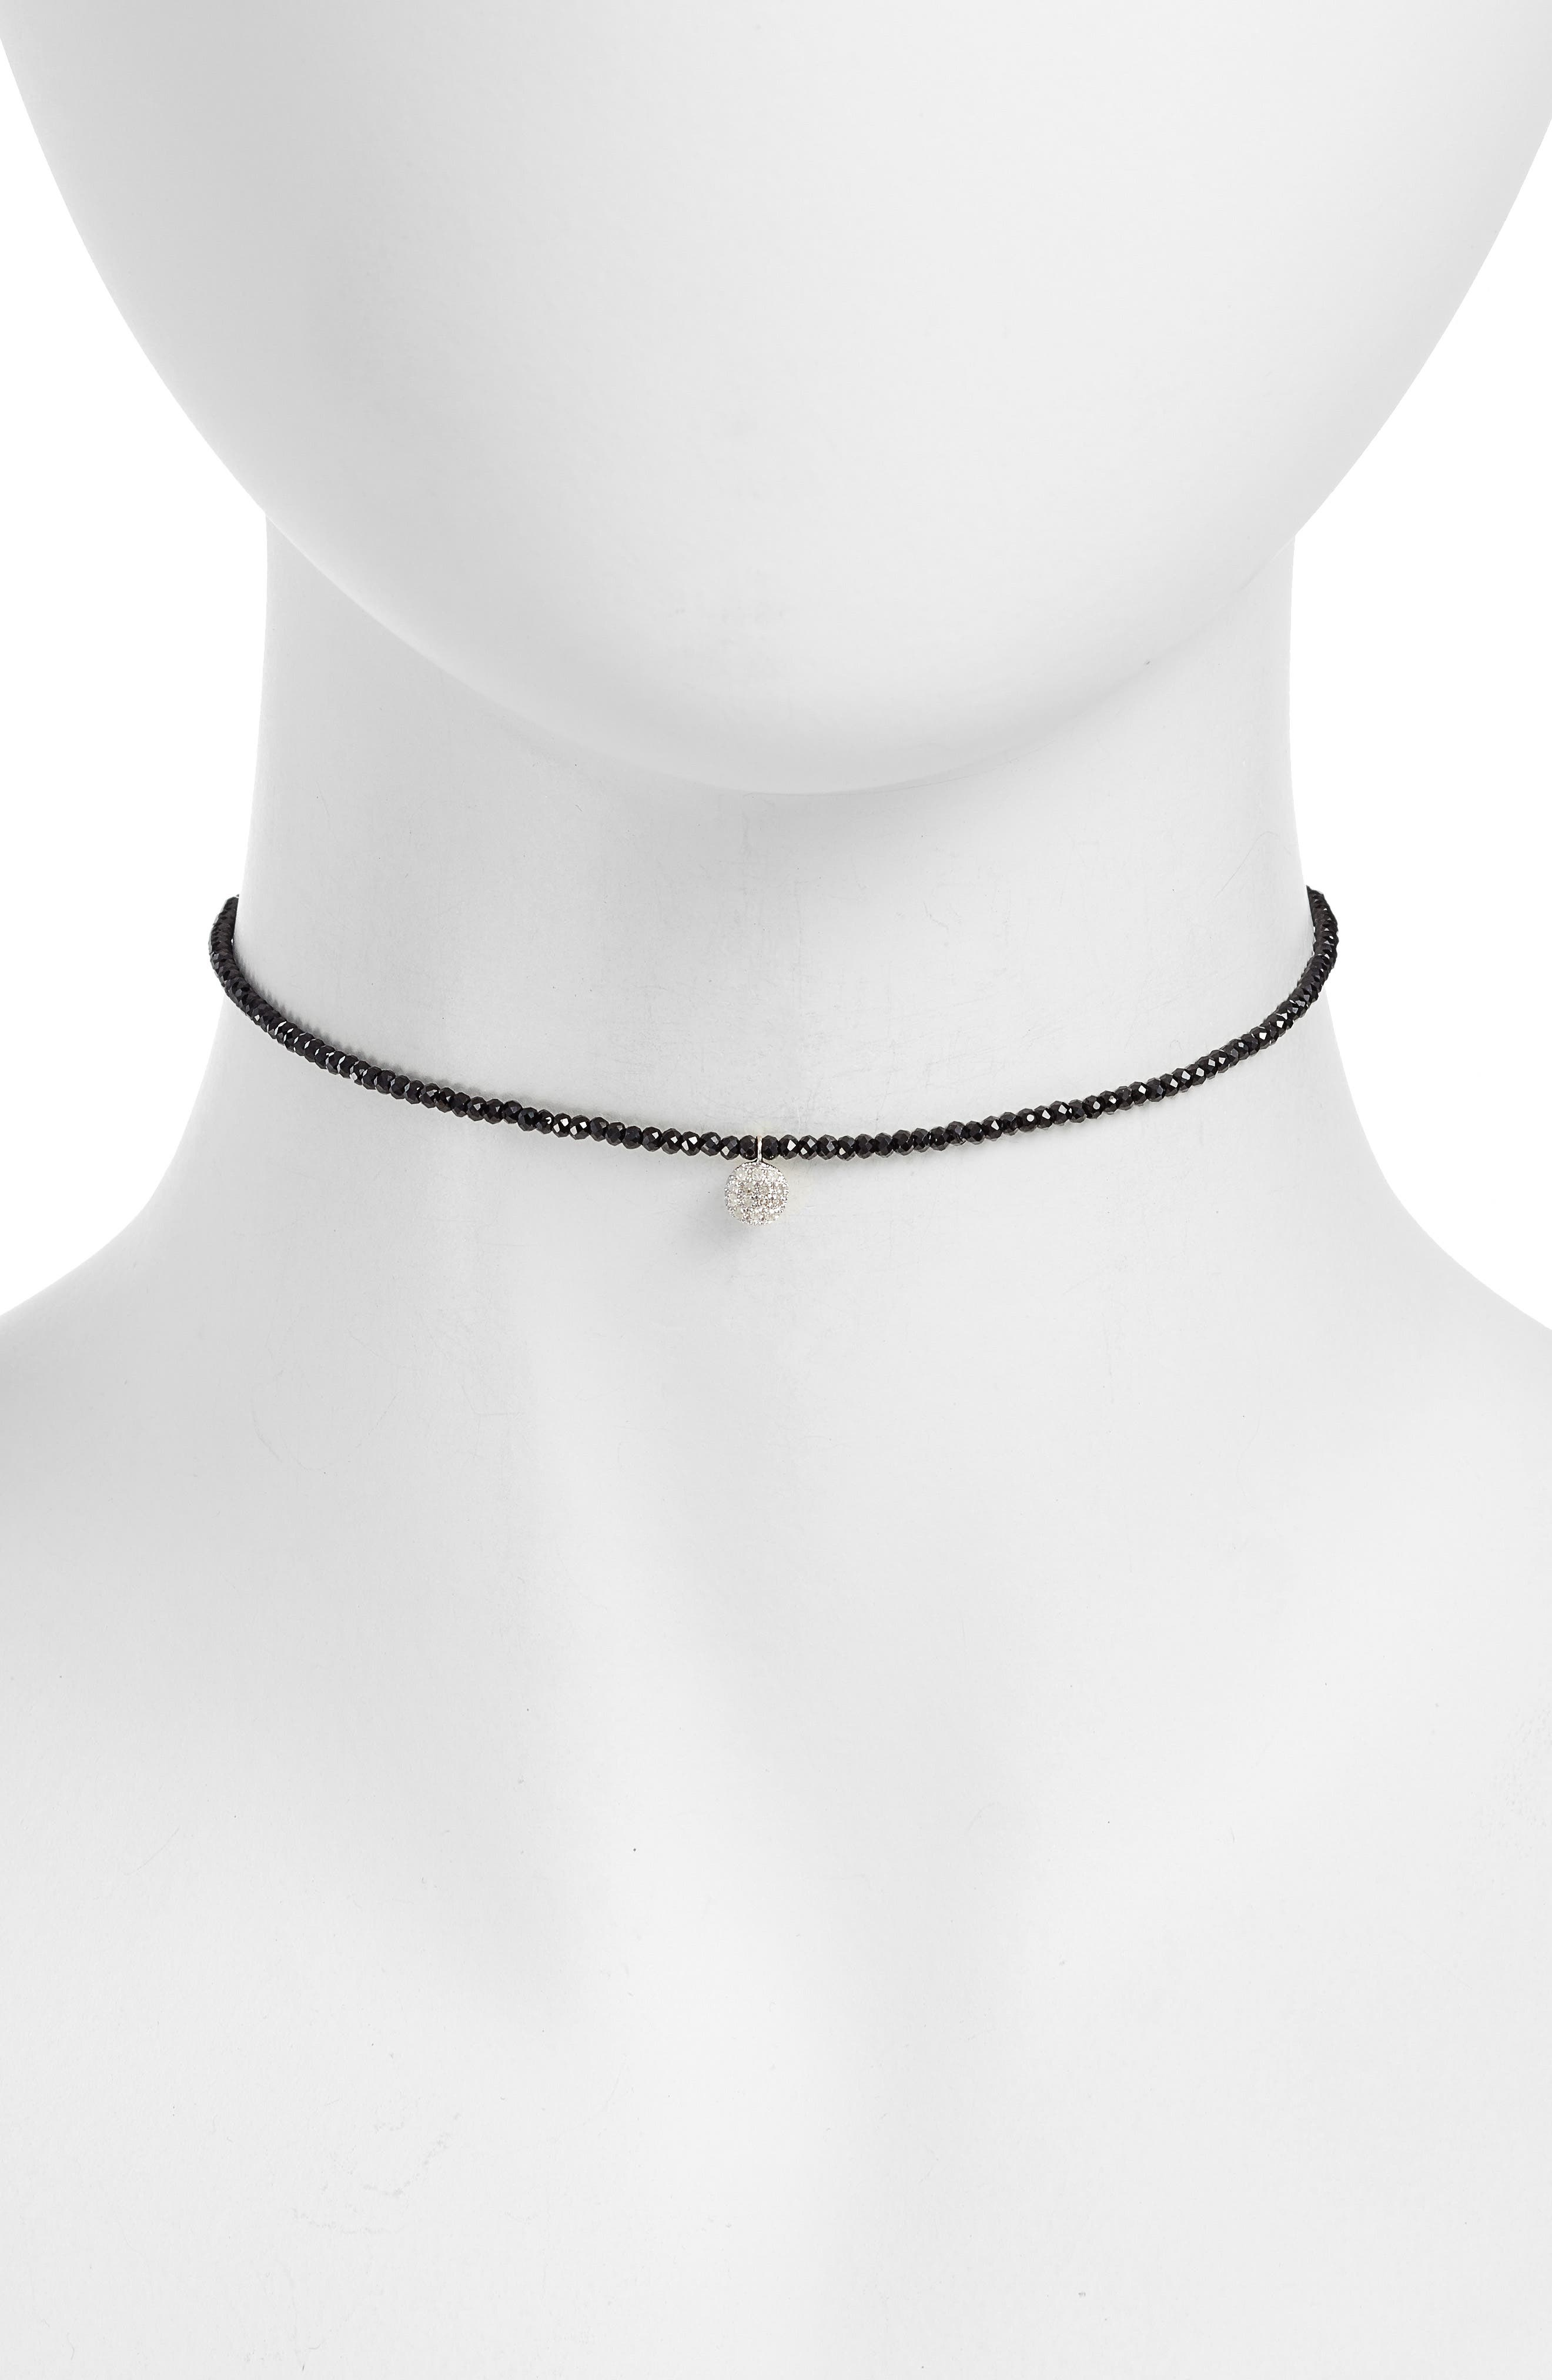 Alternate Image 1 Selected - Meira T Diamond Charm Choker Necklace